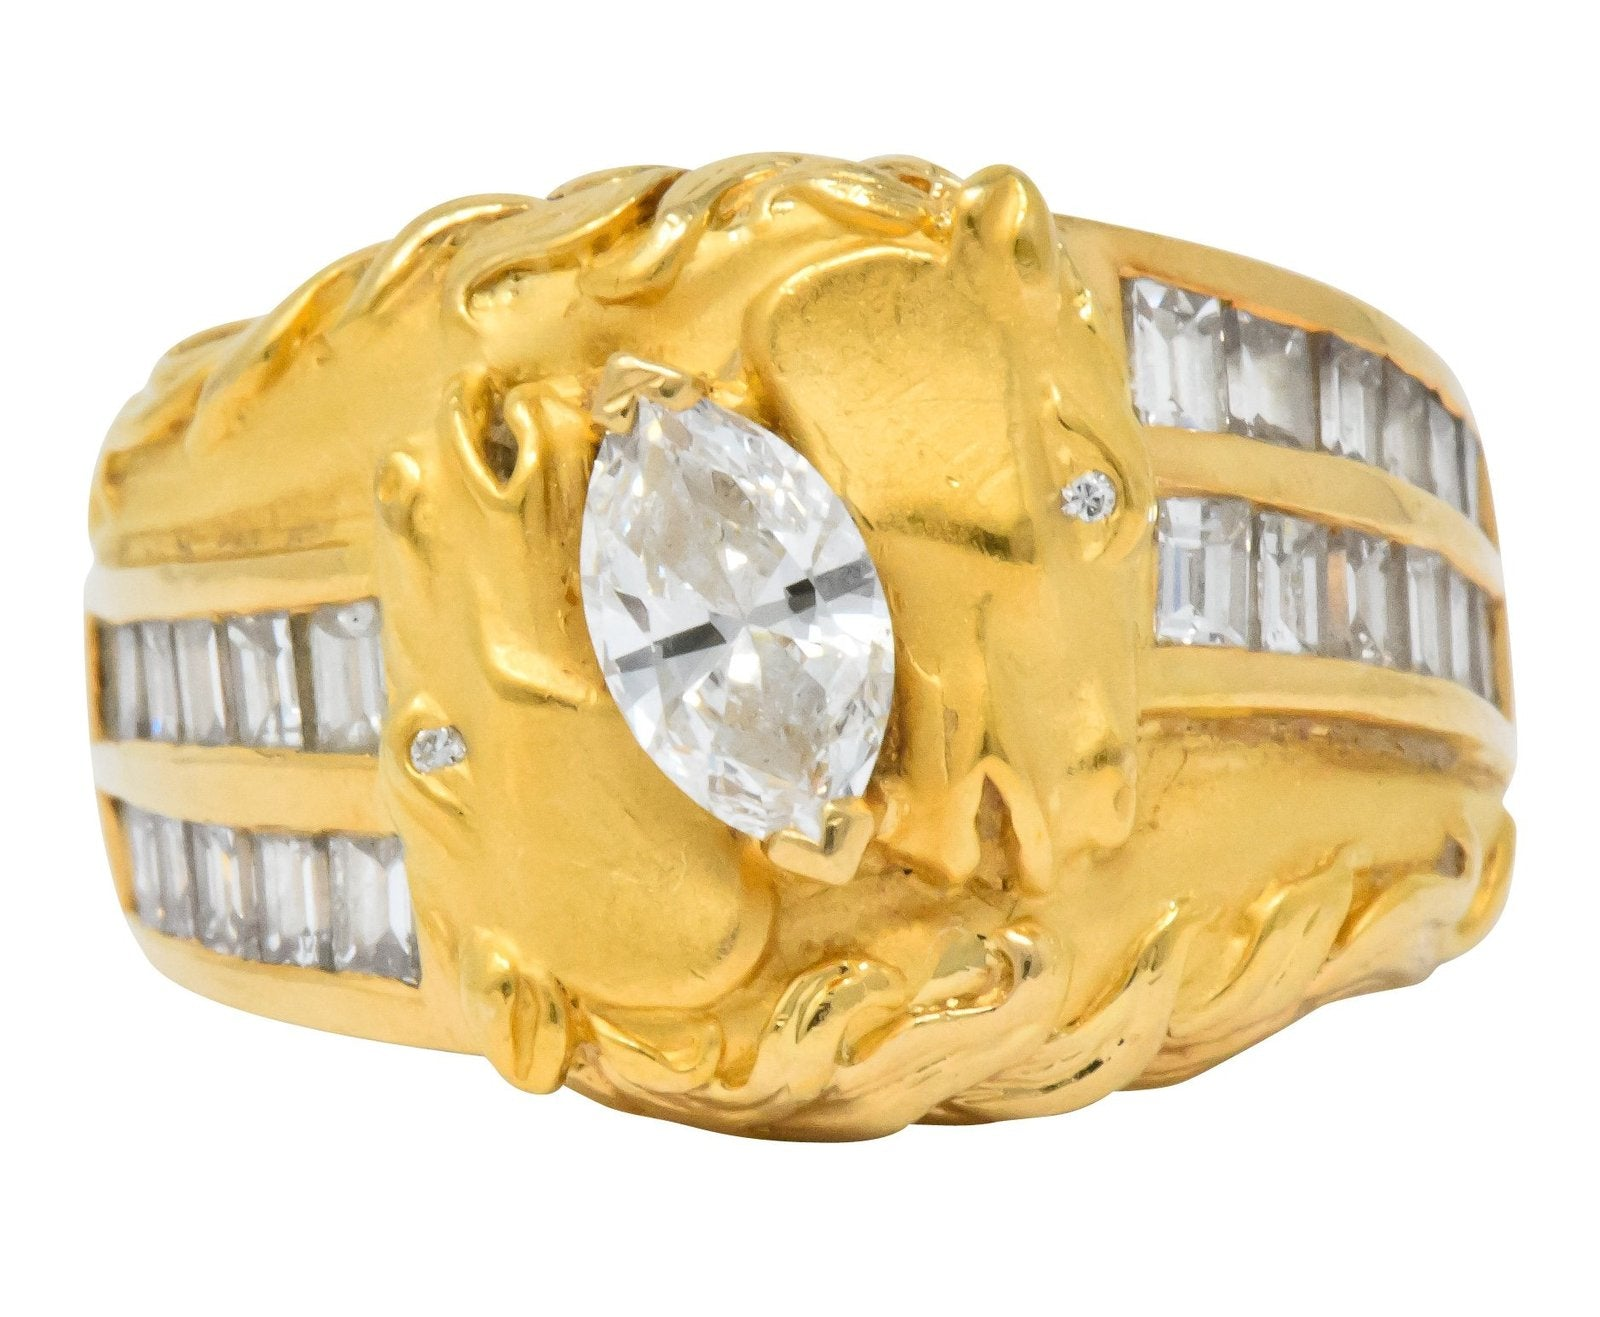 Carrera y Carrera marquise diamond horse bypass ring vintage estate jewelry